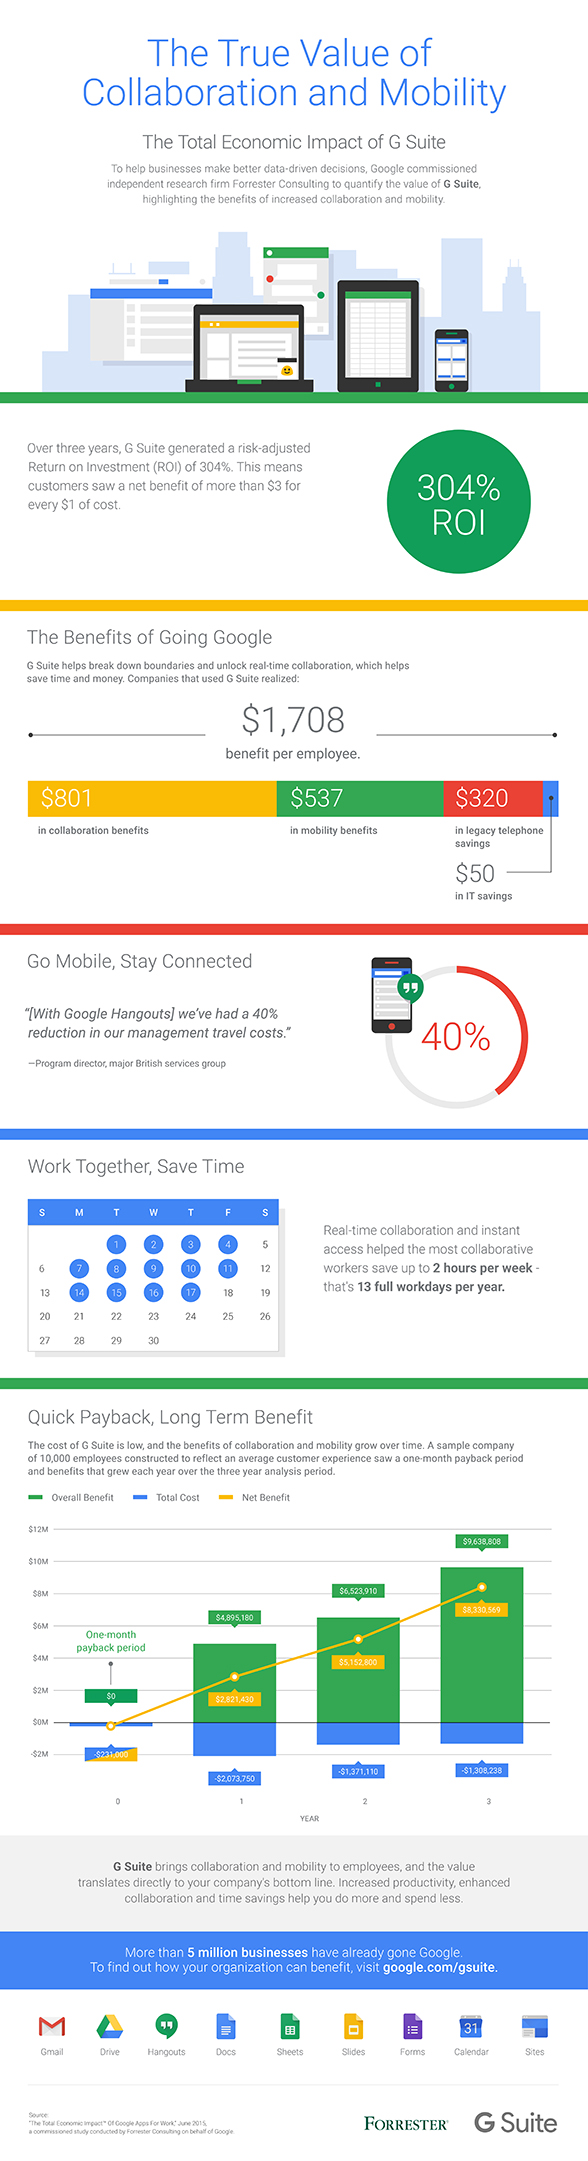 Forrester Total Economic Impact of Google Apps for Work infographic